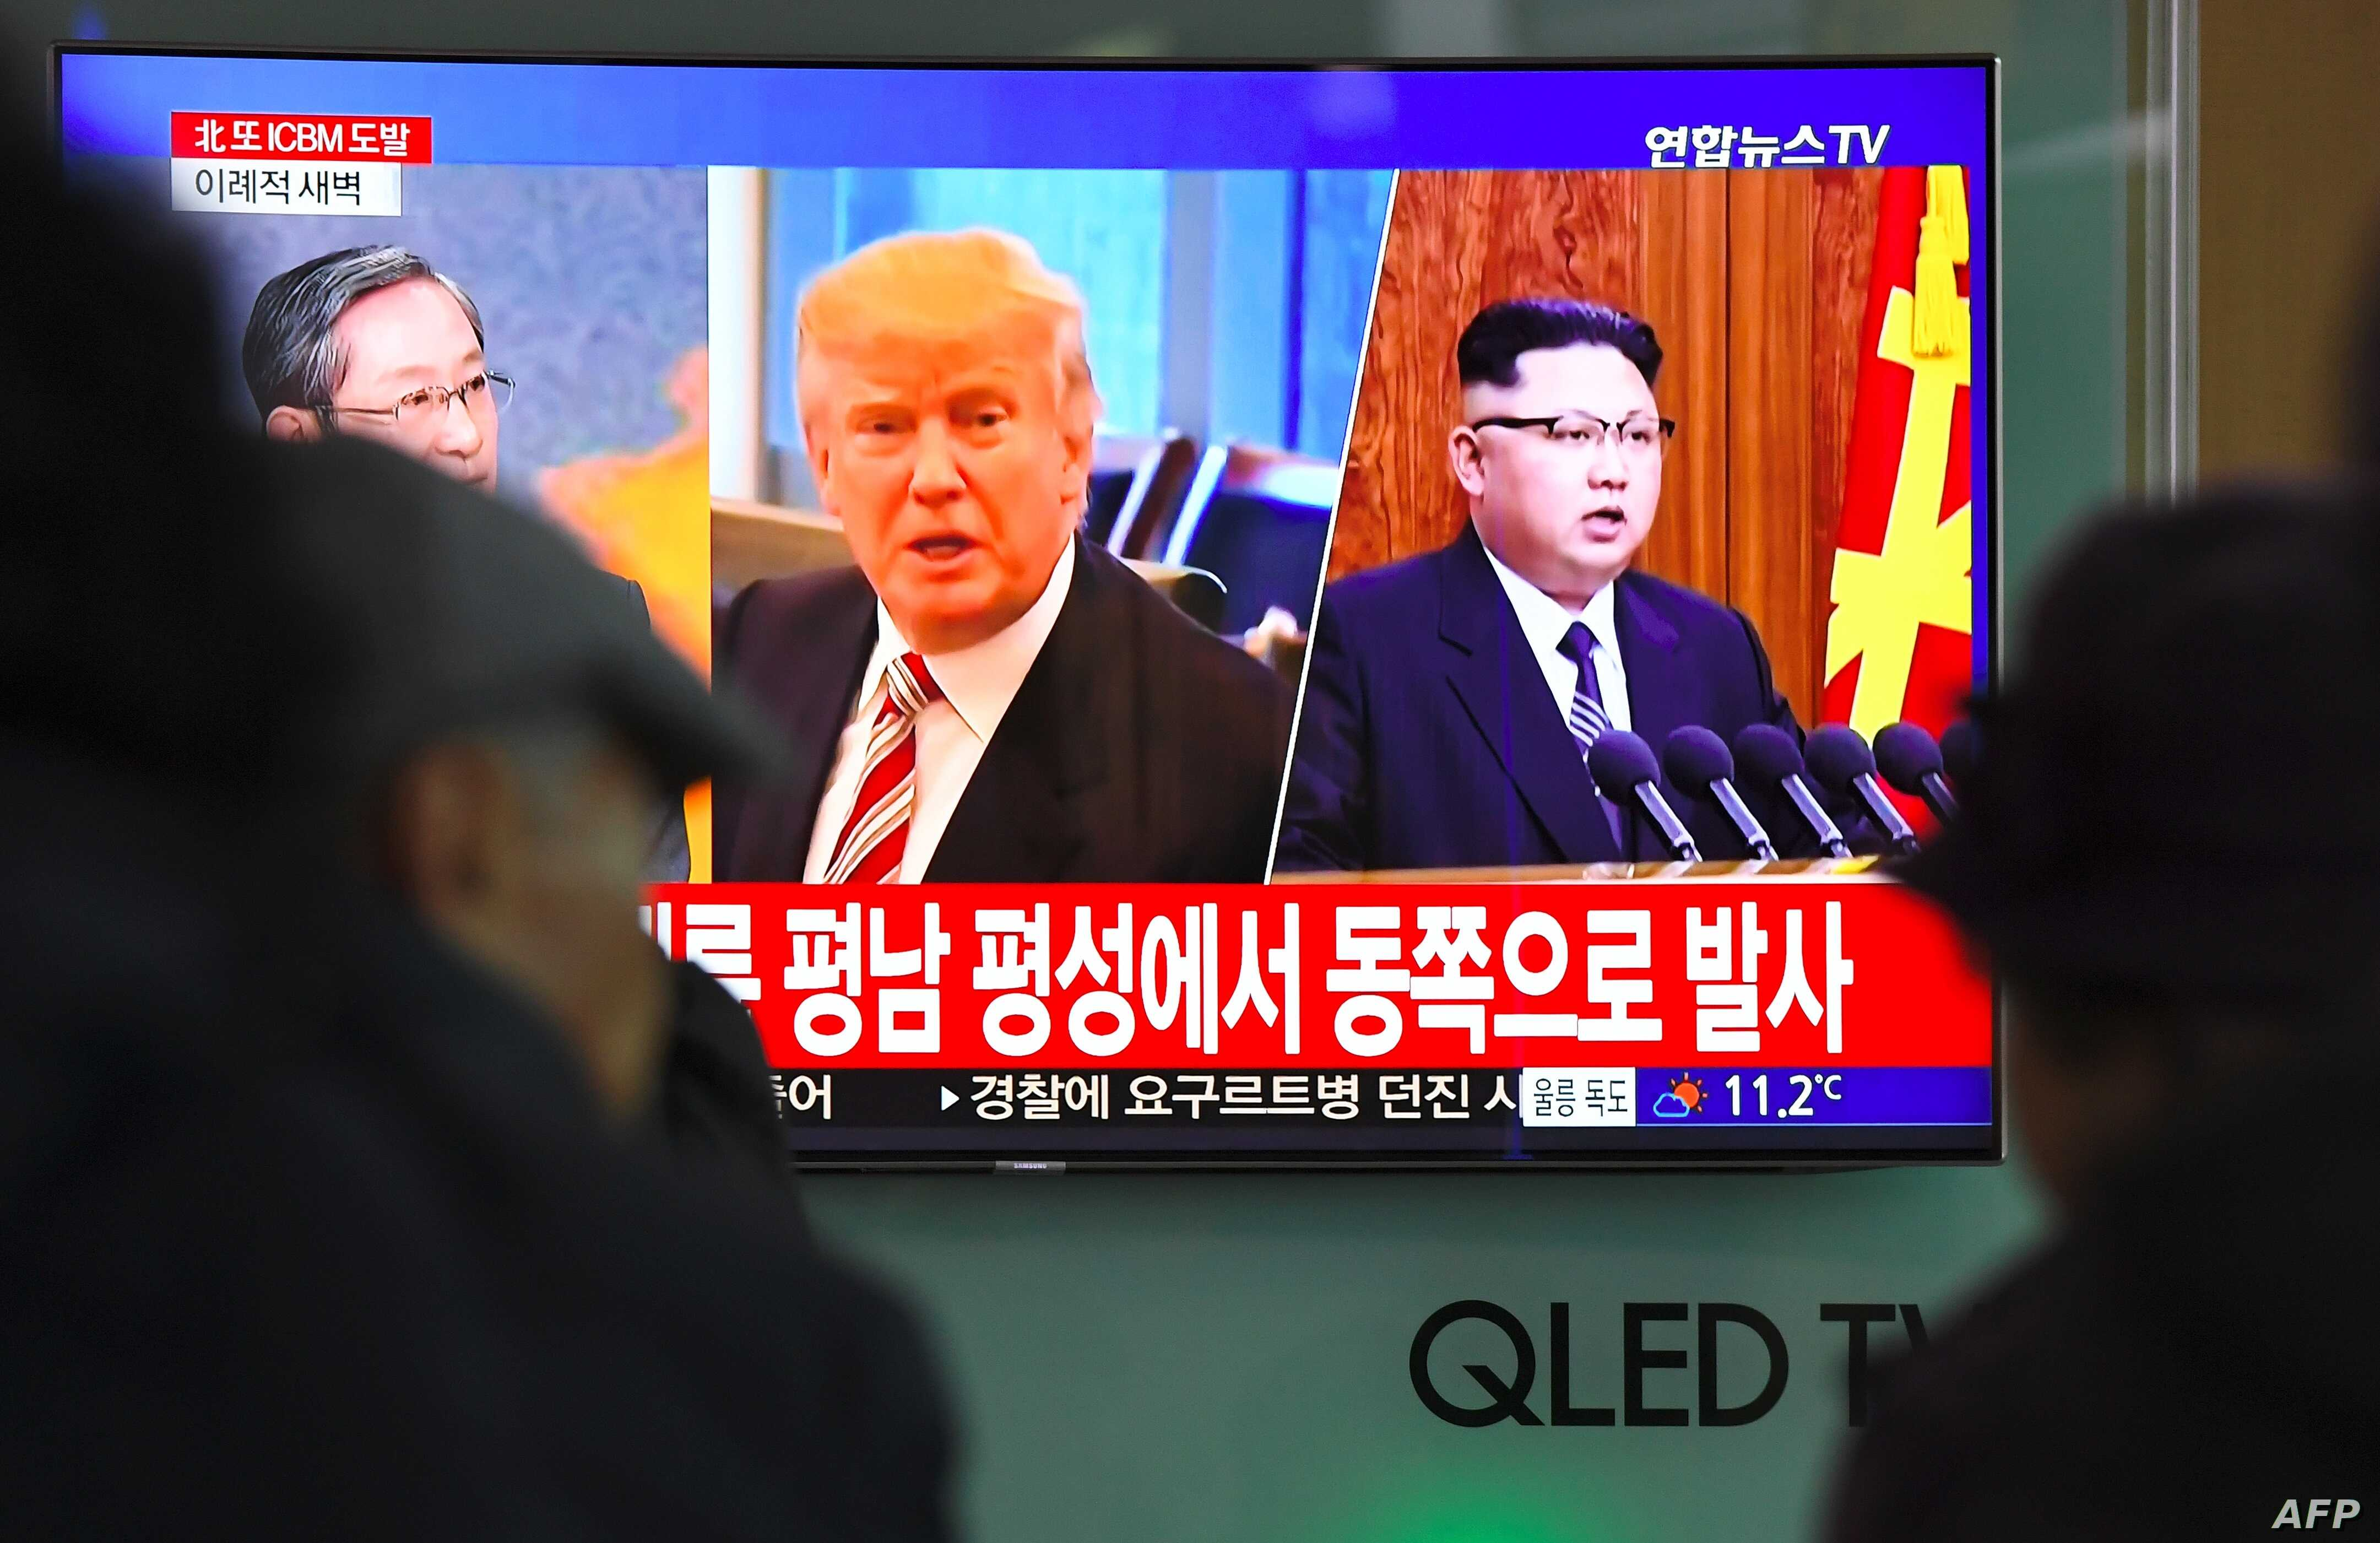 People watch a television news screen showing pictures of U.S. President Donald Trump and North Korean leader Kim Jong Un at a railway station in Seoul, Nov. 29, 2017.